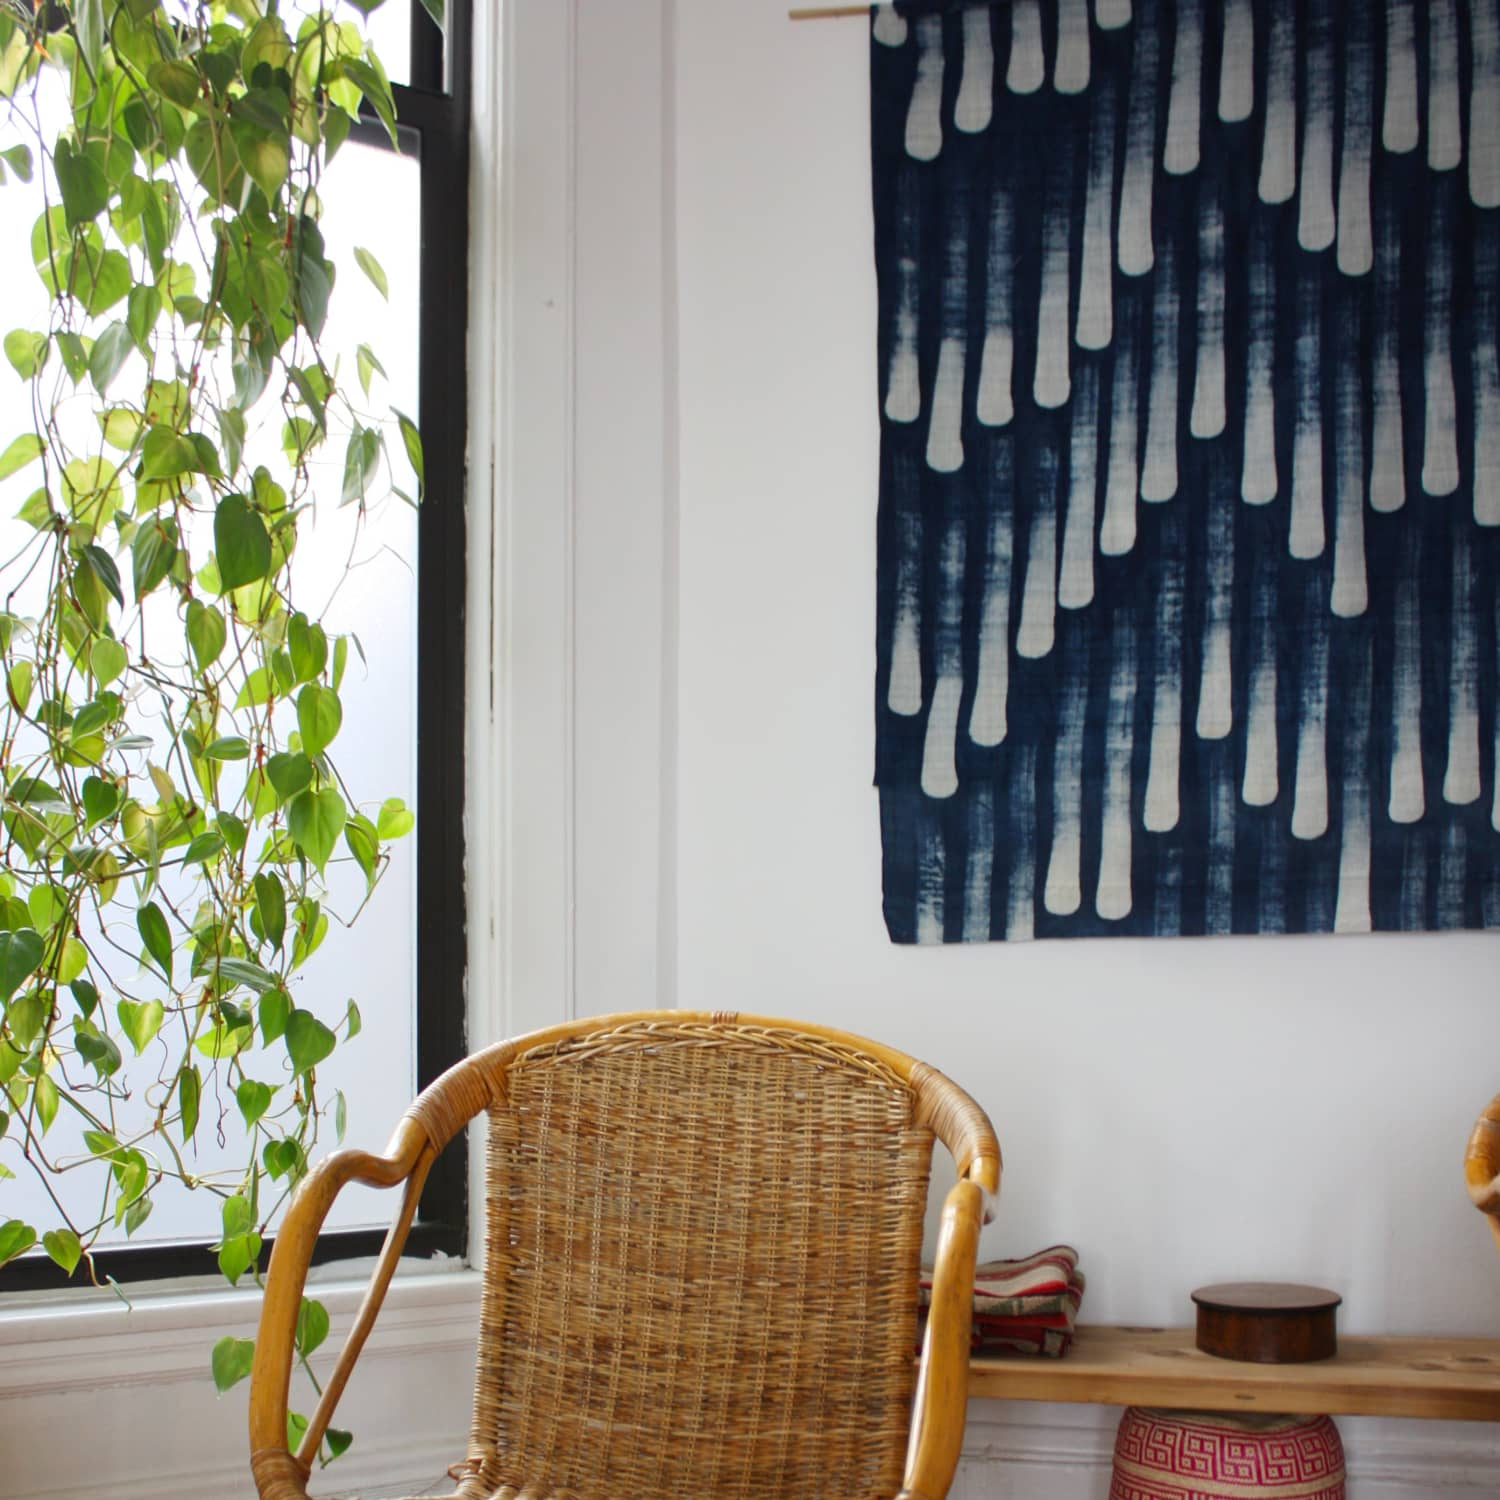 DIY Ideas: Using Fabric for Wall Art | Apartment Therapy